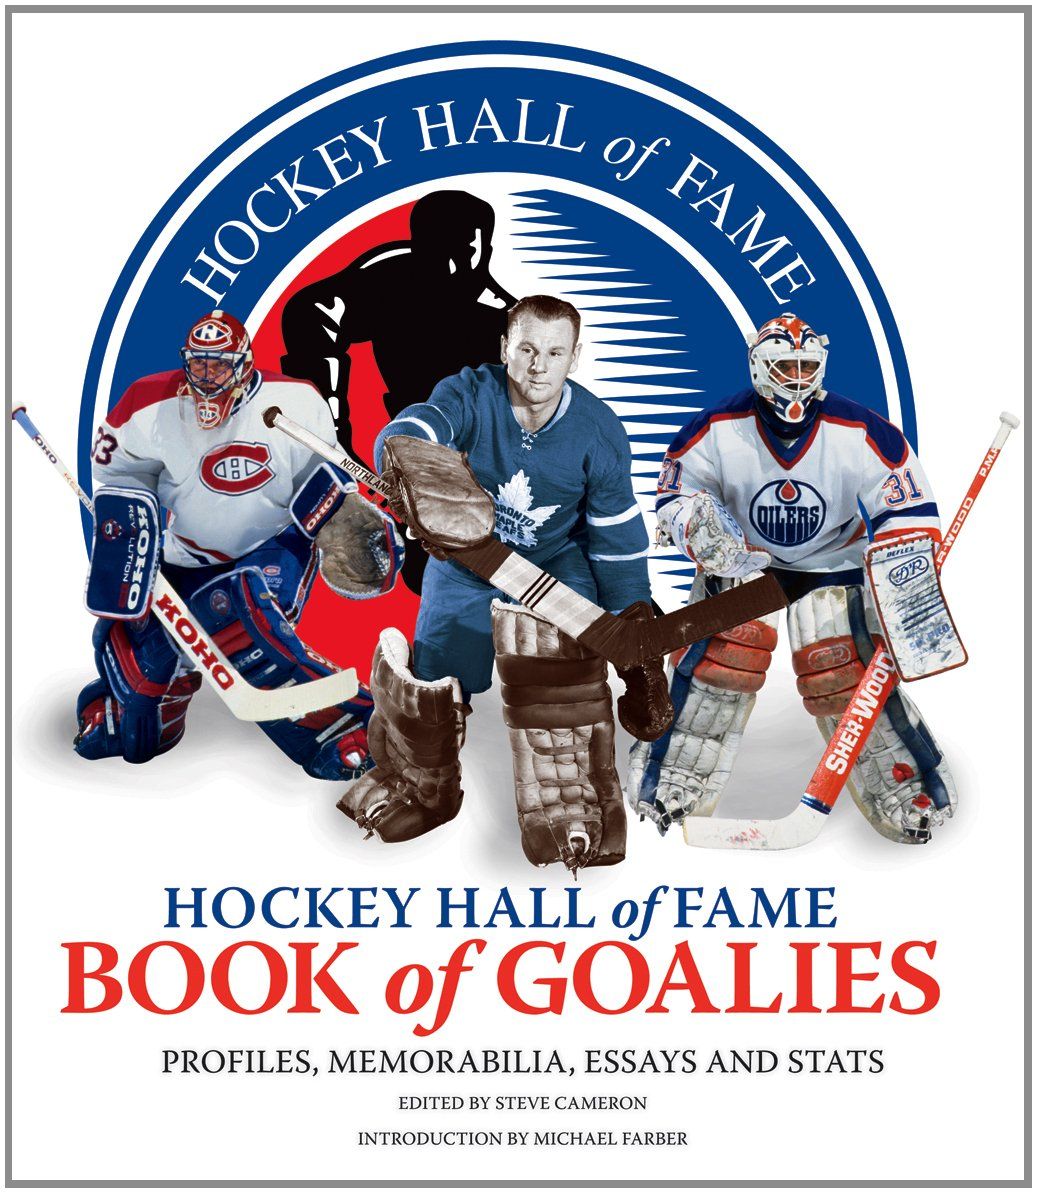 English Essays For Students Amazoncom Hockey Hall Of Fame Book Of Goalies Profiles Memorabilia  Essays And Stats  Steve Cameron Michael Farber Books Custom Writing Services Reliable also Process Essay Example Paper Amazoncom Hockey Hall Of Fame Book Of Goalies Profiles  How To Write An Essay For High School